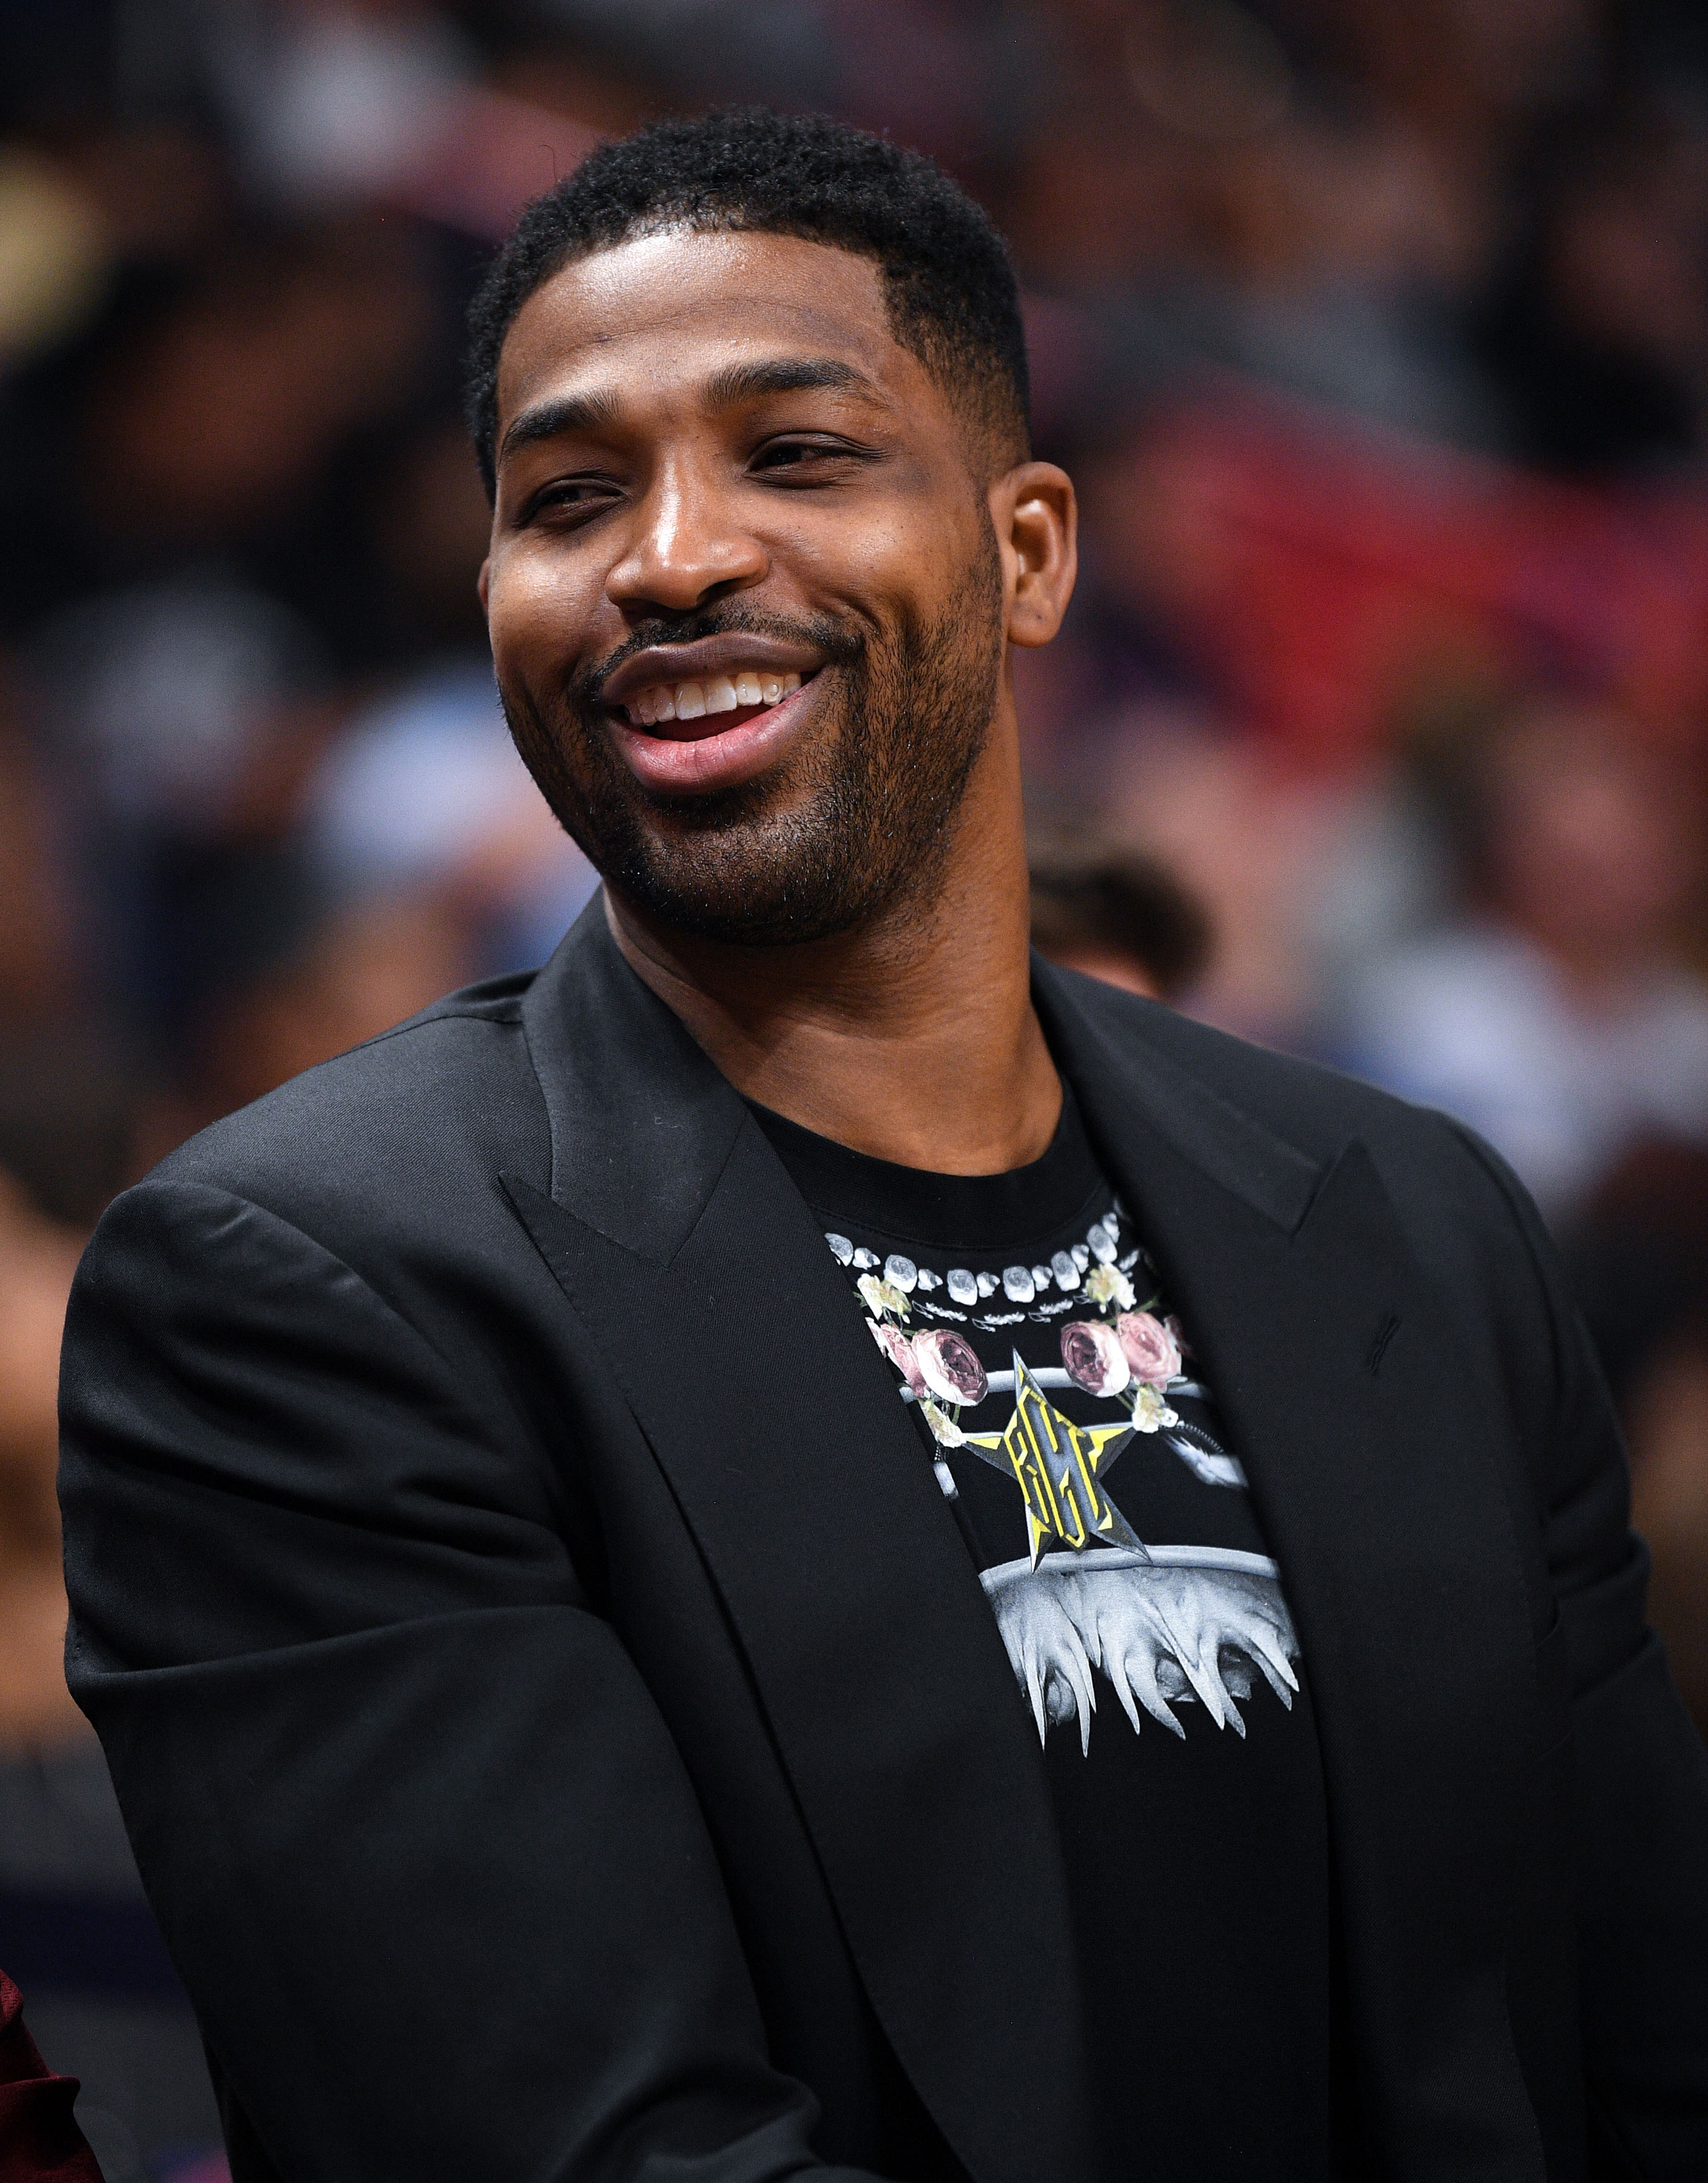 """Tristan Thompson All Smiles at Cavaliers Game in Miami: Pics - """"[Khloé] is never going to take True away from Tristan as long as he's a good father to True and [does] his part. Khloé will always allow Tristan to be in True's life as much as he can be,"""" a source told Us earlier this month. """"She's not a bitter or petty person. Khloé wants a healthy environment for True."""""""